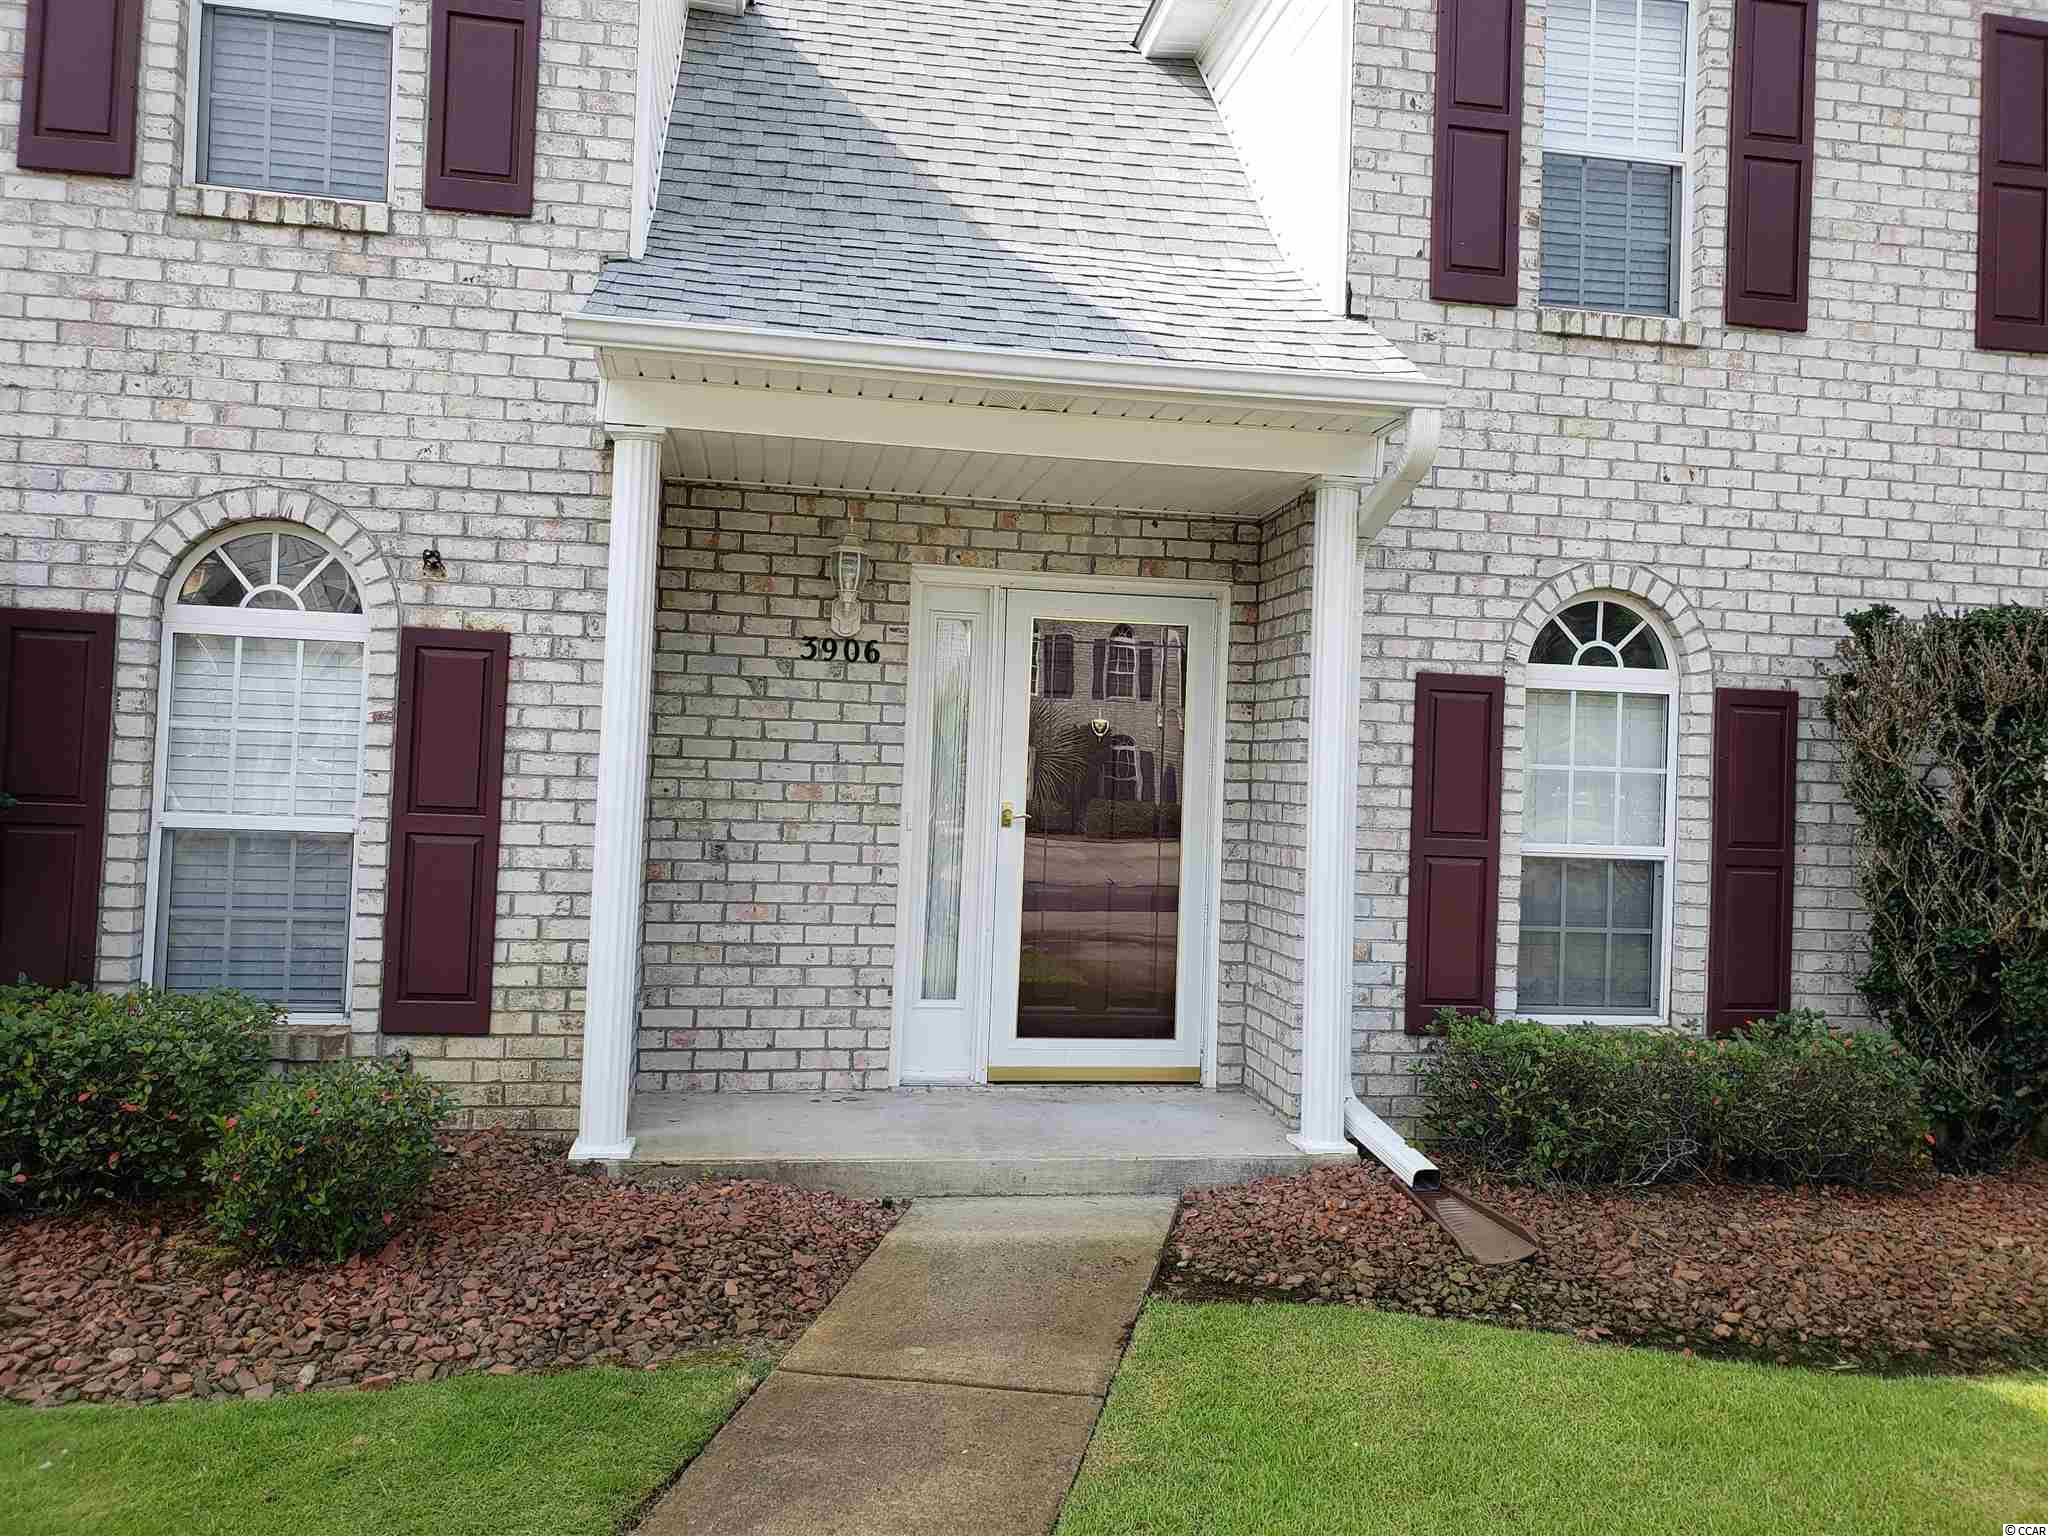 THIS VERY WELL MAINTAINED 2-STORY, 3 BEDROOM, 2 BATH TOWNHOUSE HAS BEEN USED ONLY AS A SECOND HOME, NEVER RENTED.  ROOF, HVAC, HOT WATER HEATER NEW SINCE 2020.  WASHER/DRYER CONVEY.  LONG TERM RENTAL ONLY, OWNER ALLOWED PETS.  COMMUNITY POOL.  EASY ACCESS TO LITTLE RIVER WATERFRONT, RESTAURANTS, NORTH MYRTLE BEACH, IS JUST A SKIP AWAY.